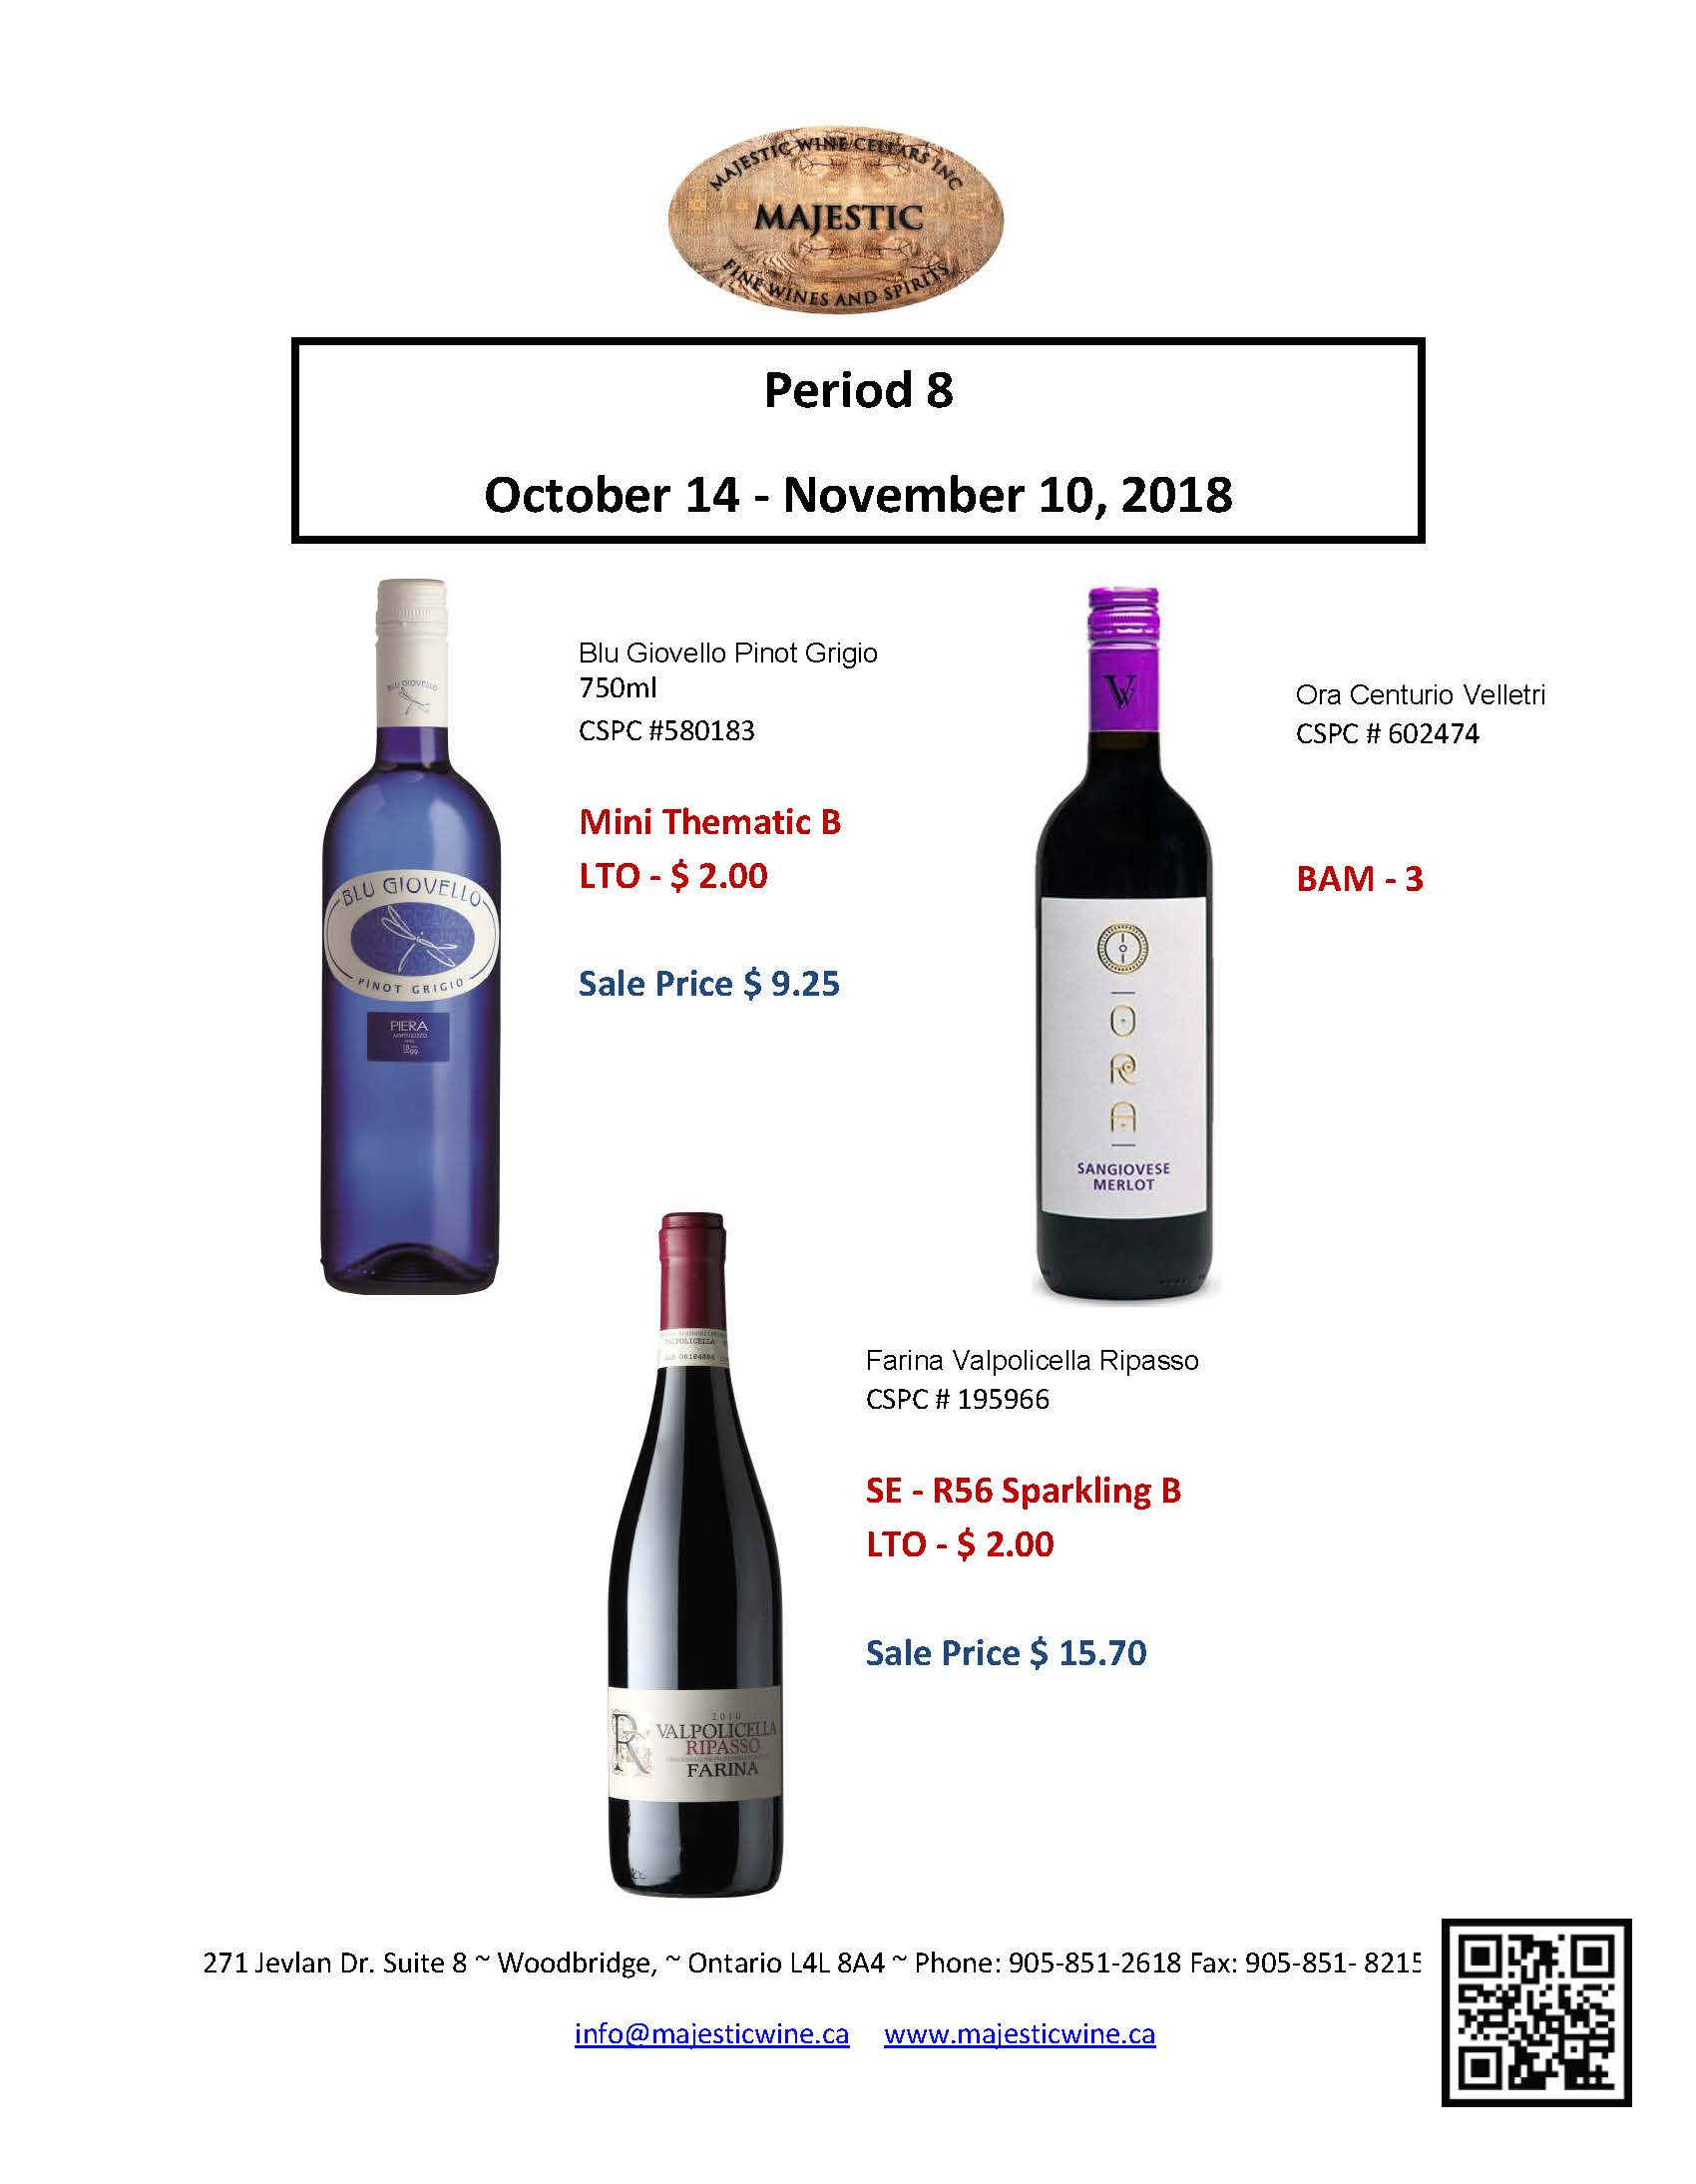 Period 8: October 14th - November 10th Promotion